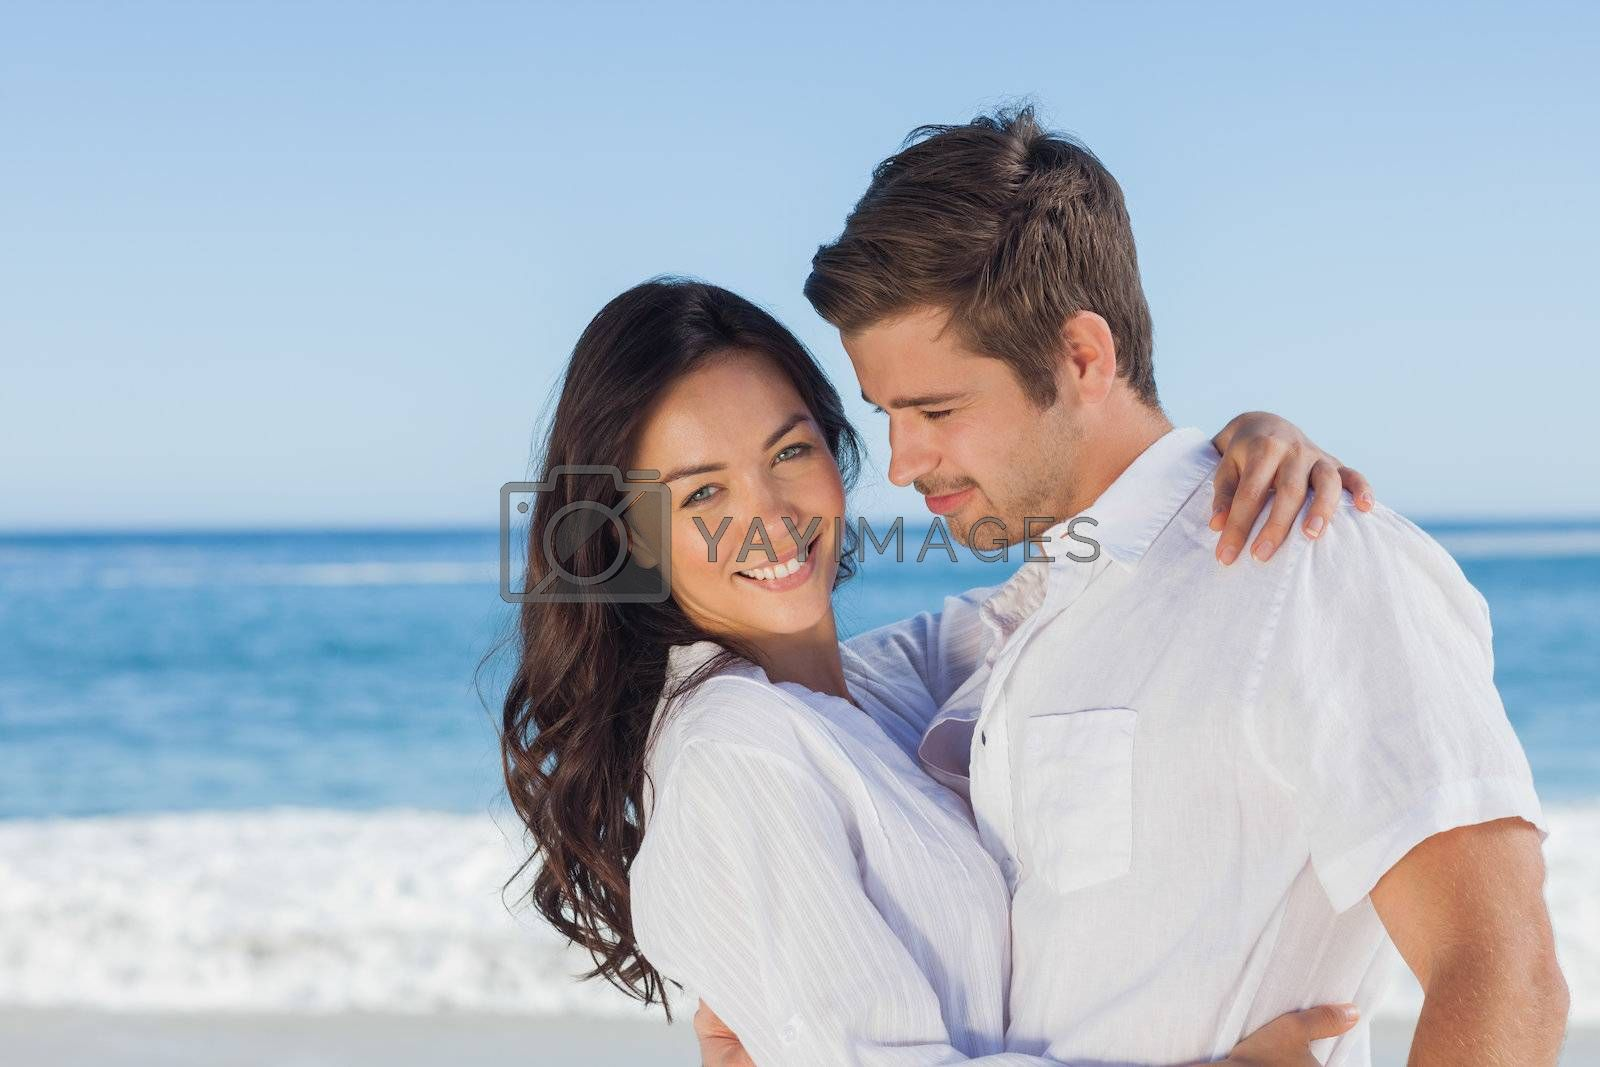 Young couple embracing and posing on the beach  by Wavebreakmedia